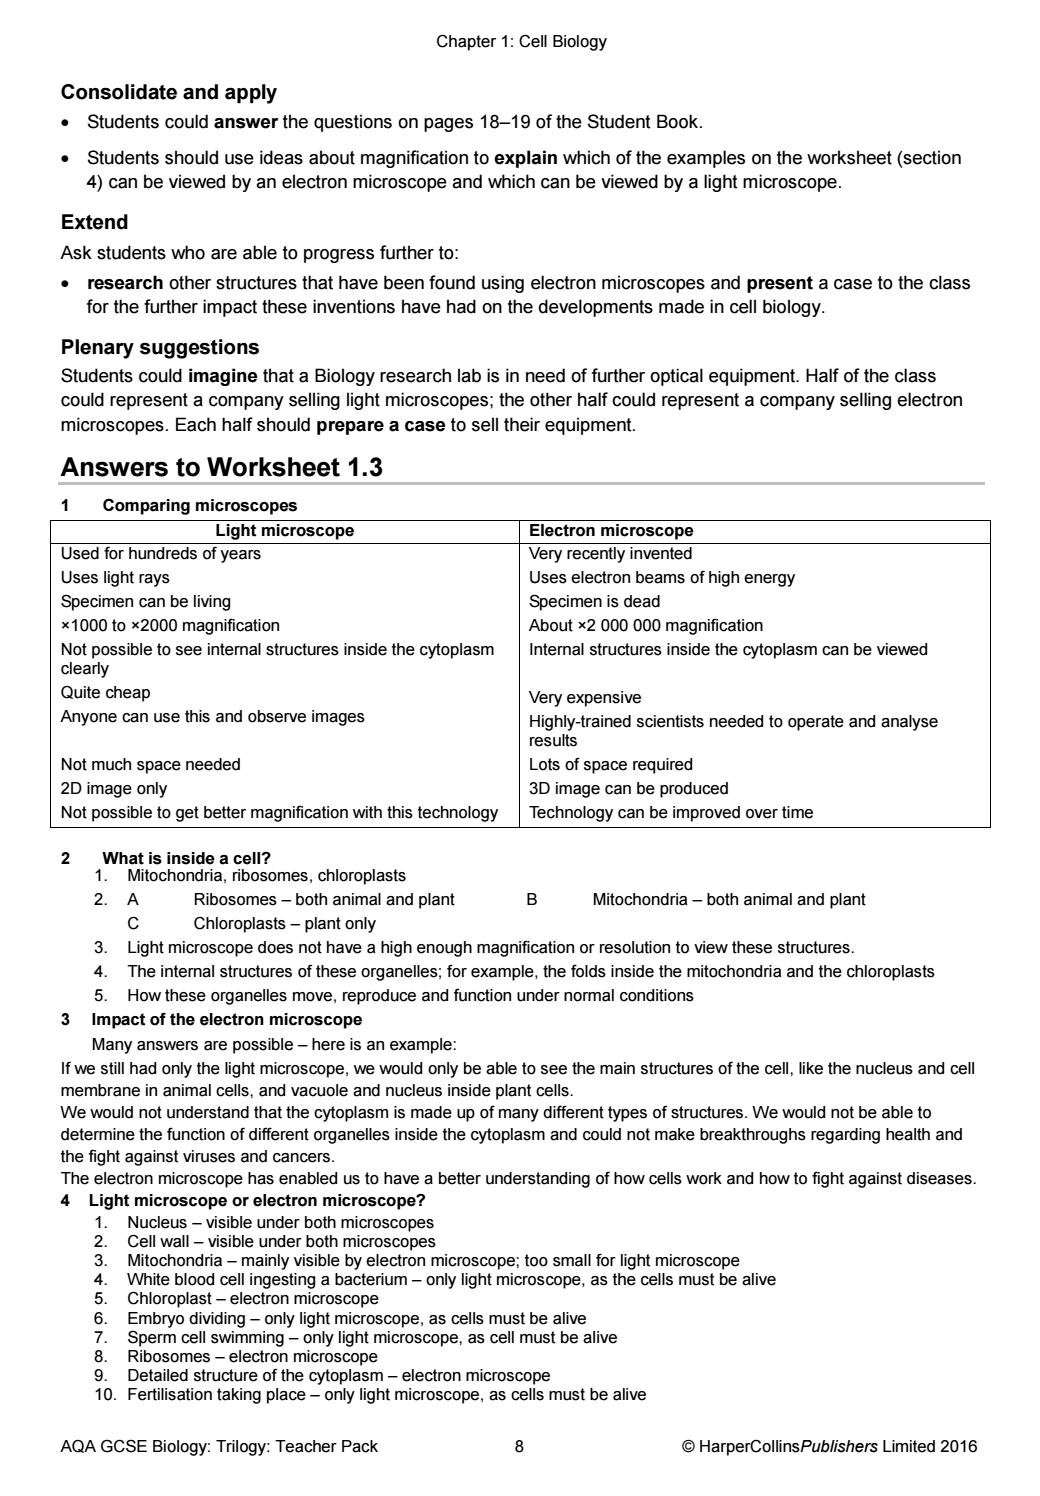 Worksheets Microscope Worksheets free worksheets library download and print on to use the microscope